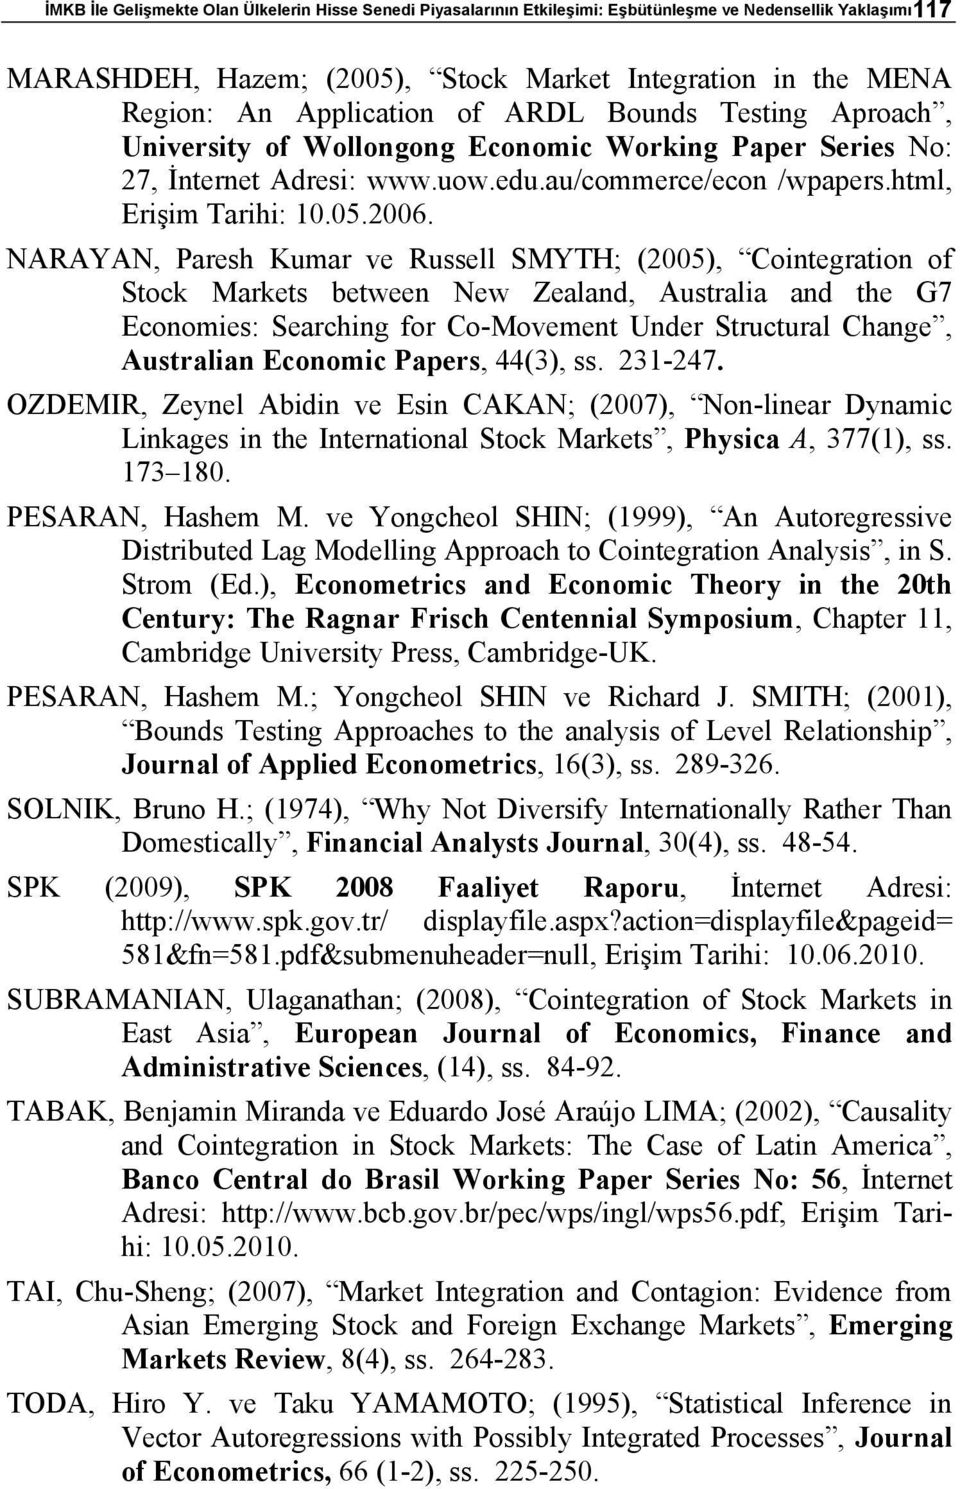 NARAYAN, Paresh Kumar ve Russell SMYTH; (25), Coinegraion of Sock Markes beween New Zealand, Ausralia and he G7 Economies: Searching for Co-Movemen Under Srucural Change, Ausralian Economic Papers,